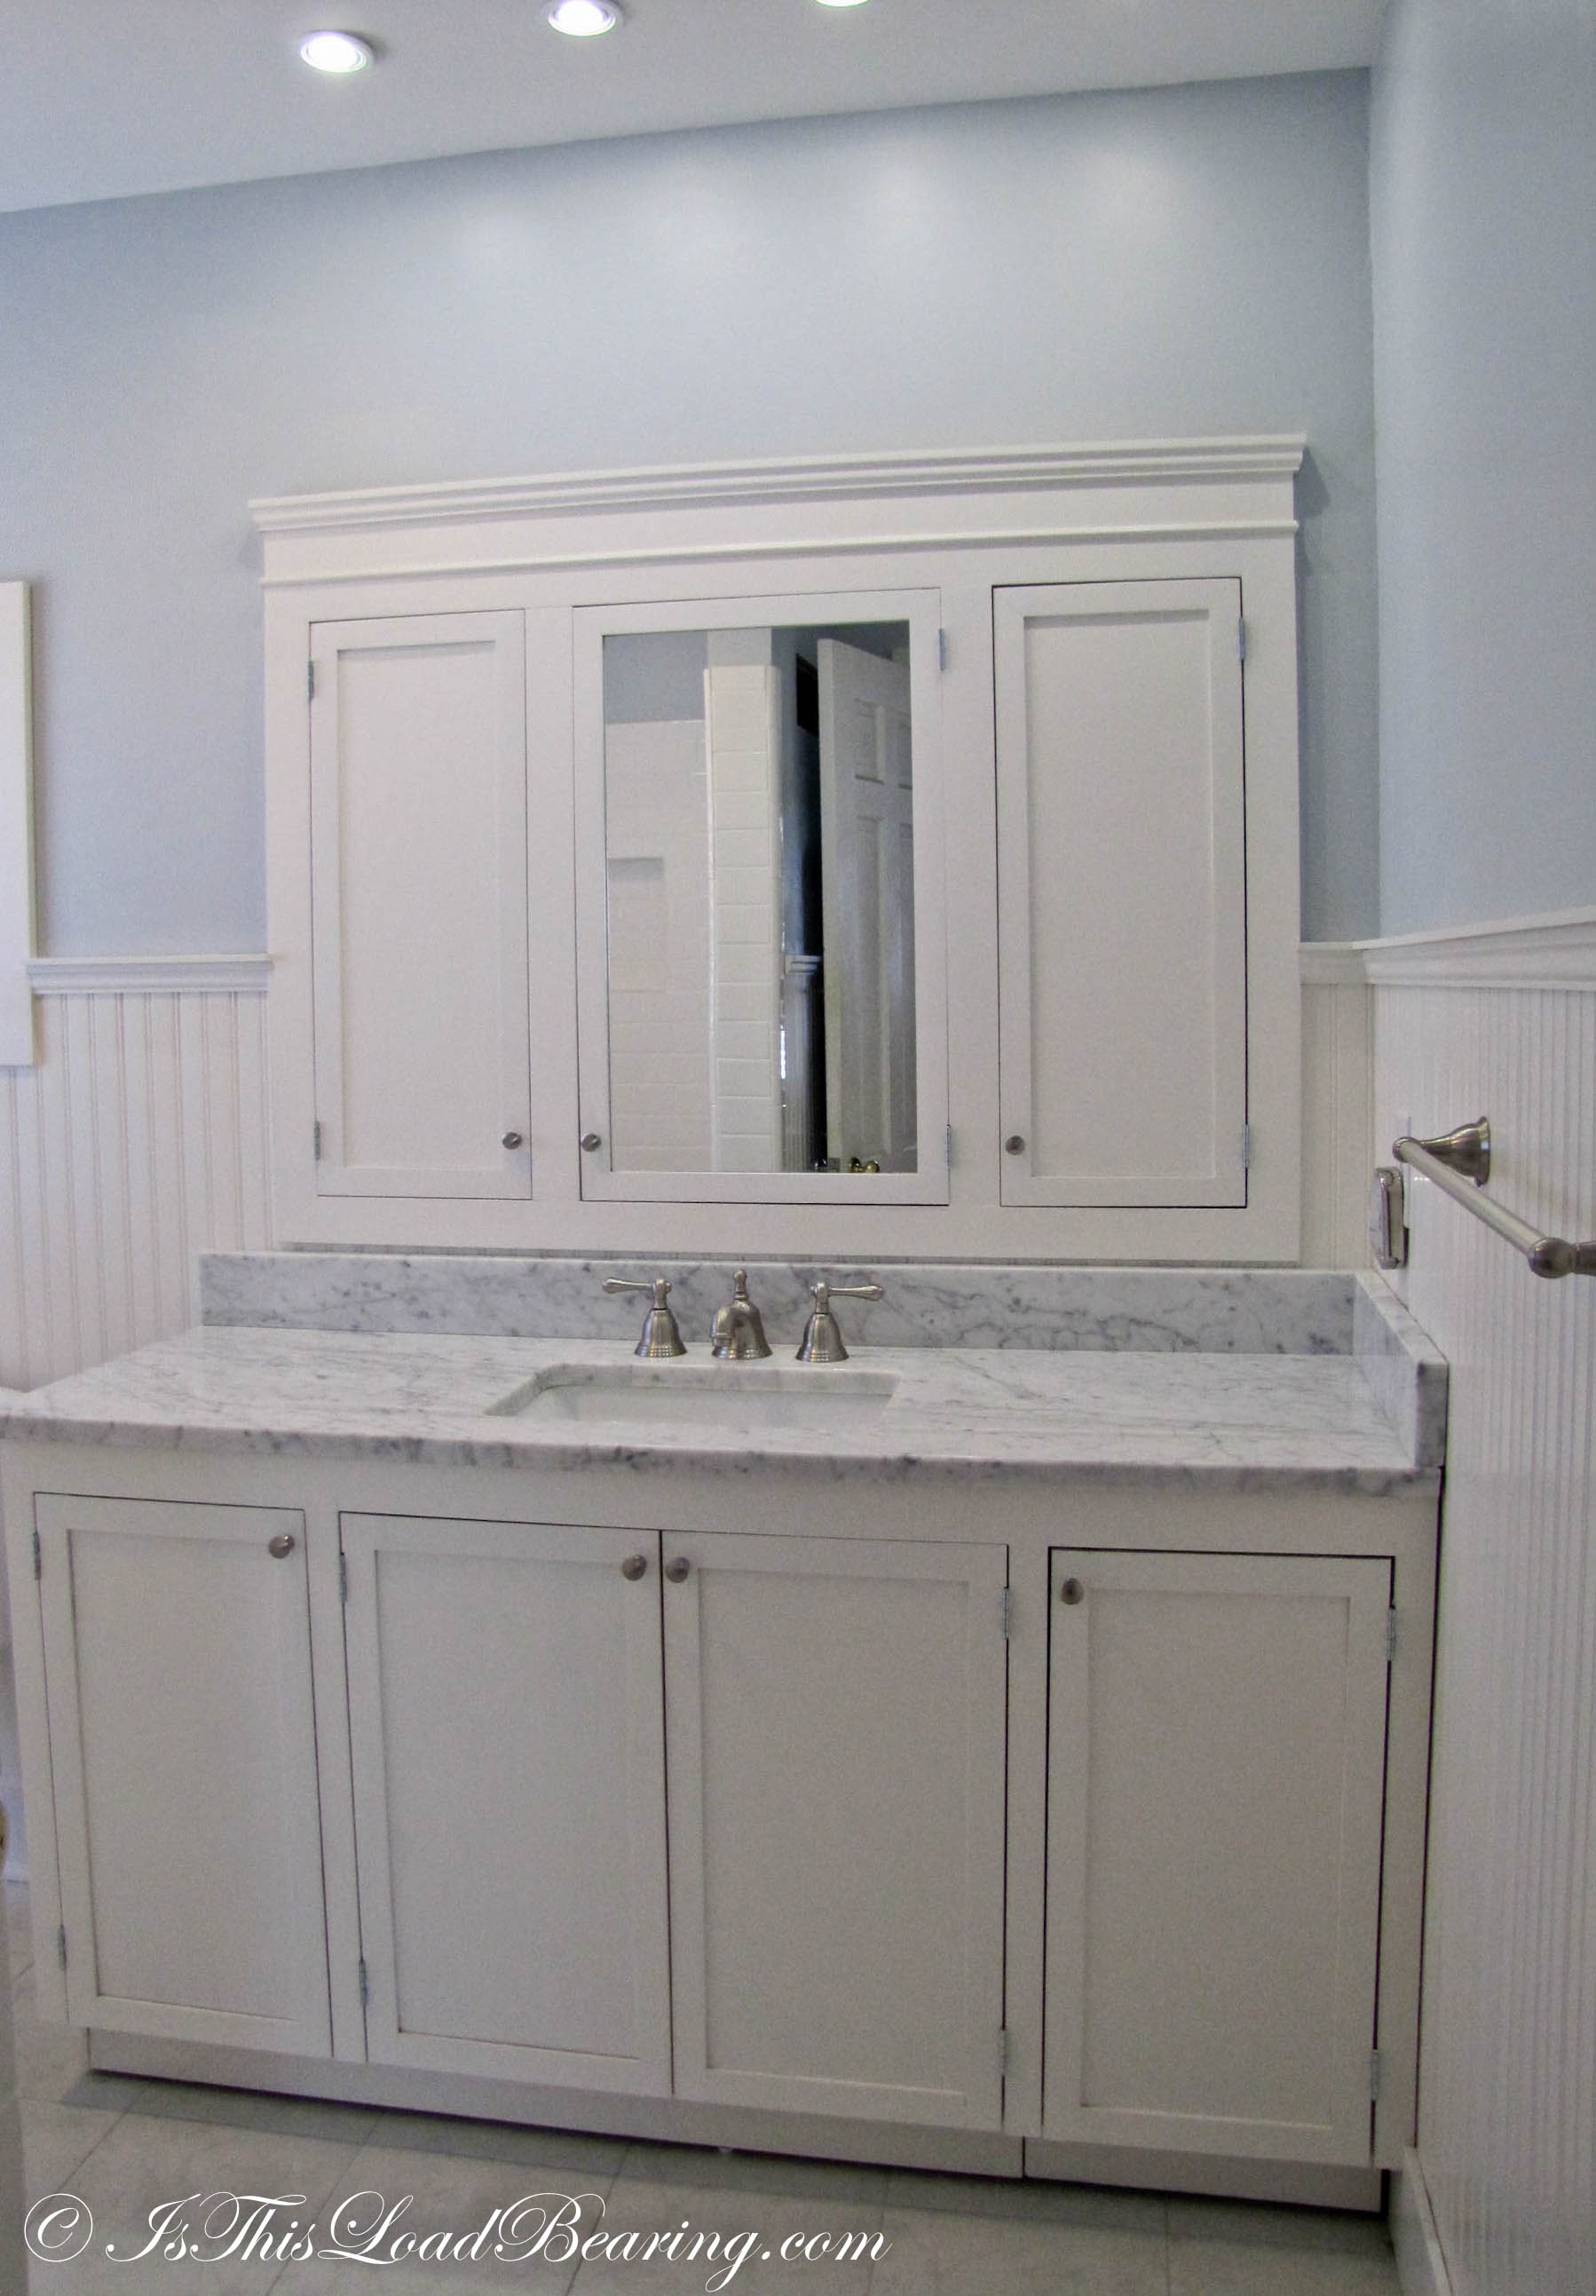 Masters Kitchen Base Cabinets Master Bath Is This Load Bearing